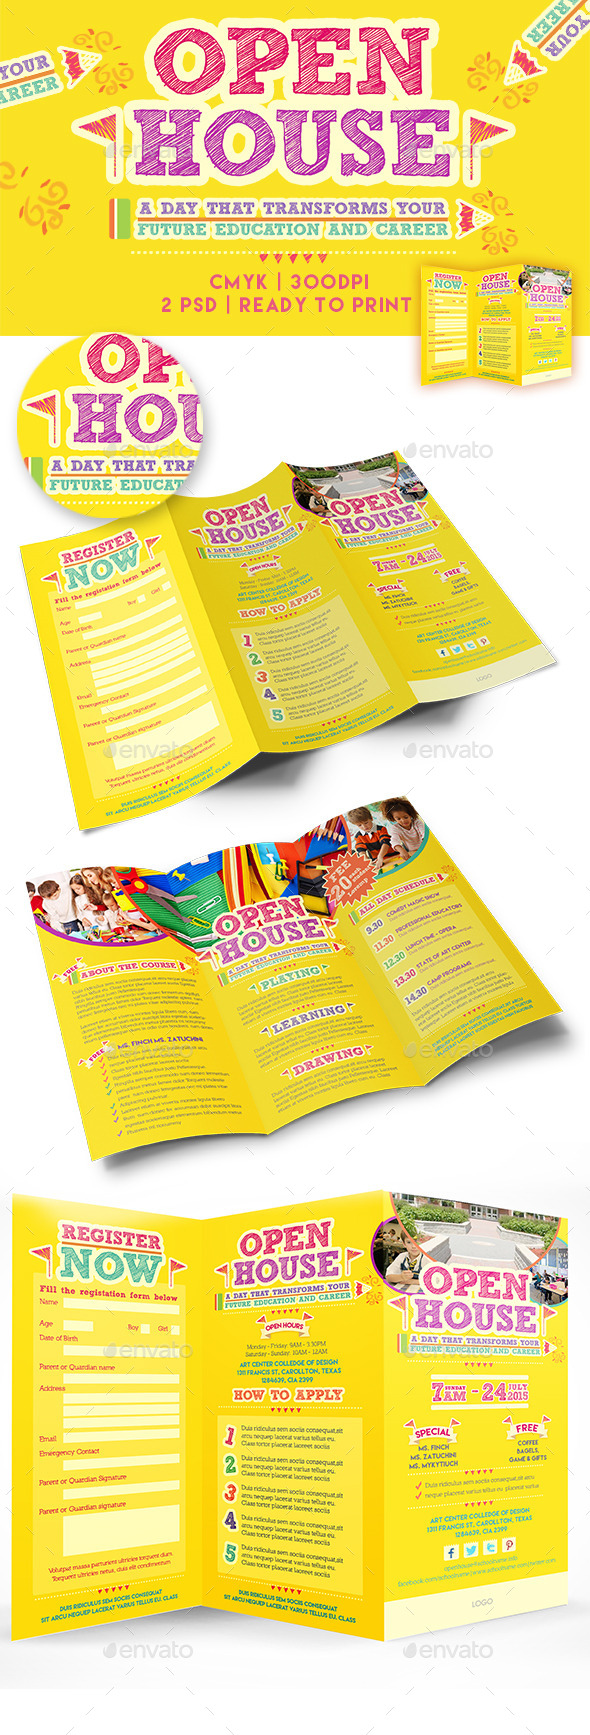 Open House Trifold Brochure Template  - Brochures Print Templates